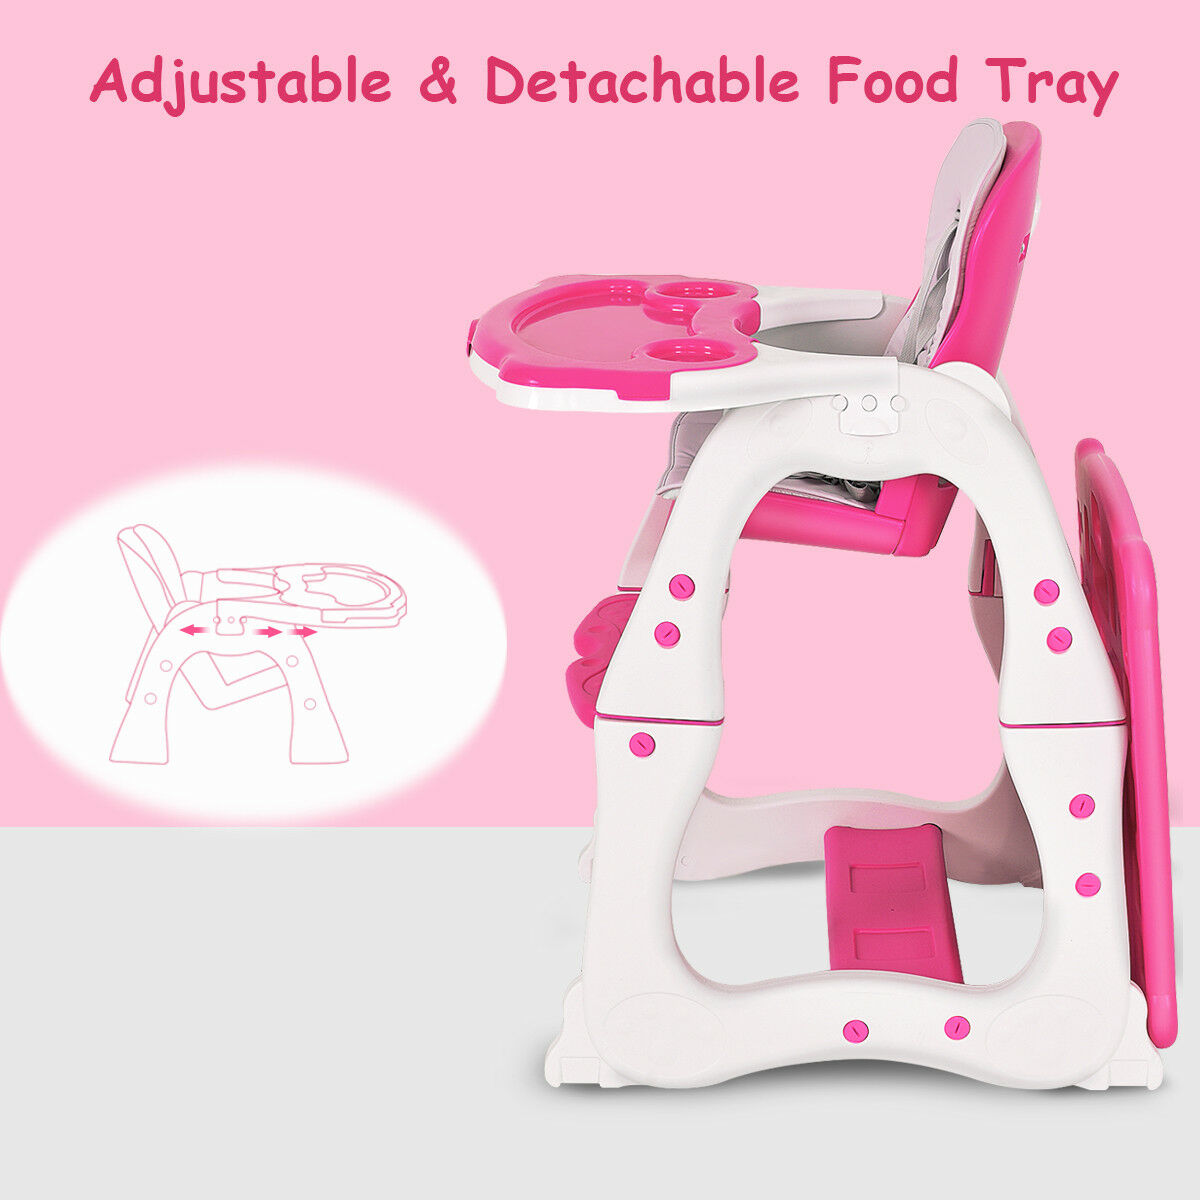 3 in 1 Baby High Chair Convertible Play Table Seat Booster Toddler Feeding Tray - image 1 de 10